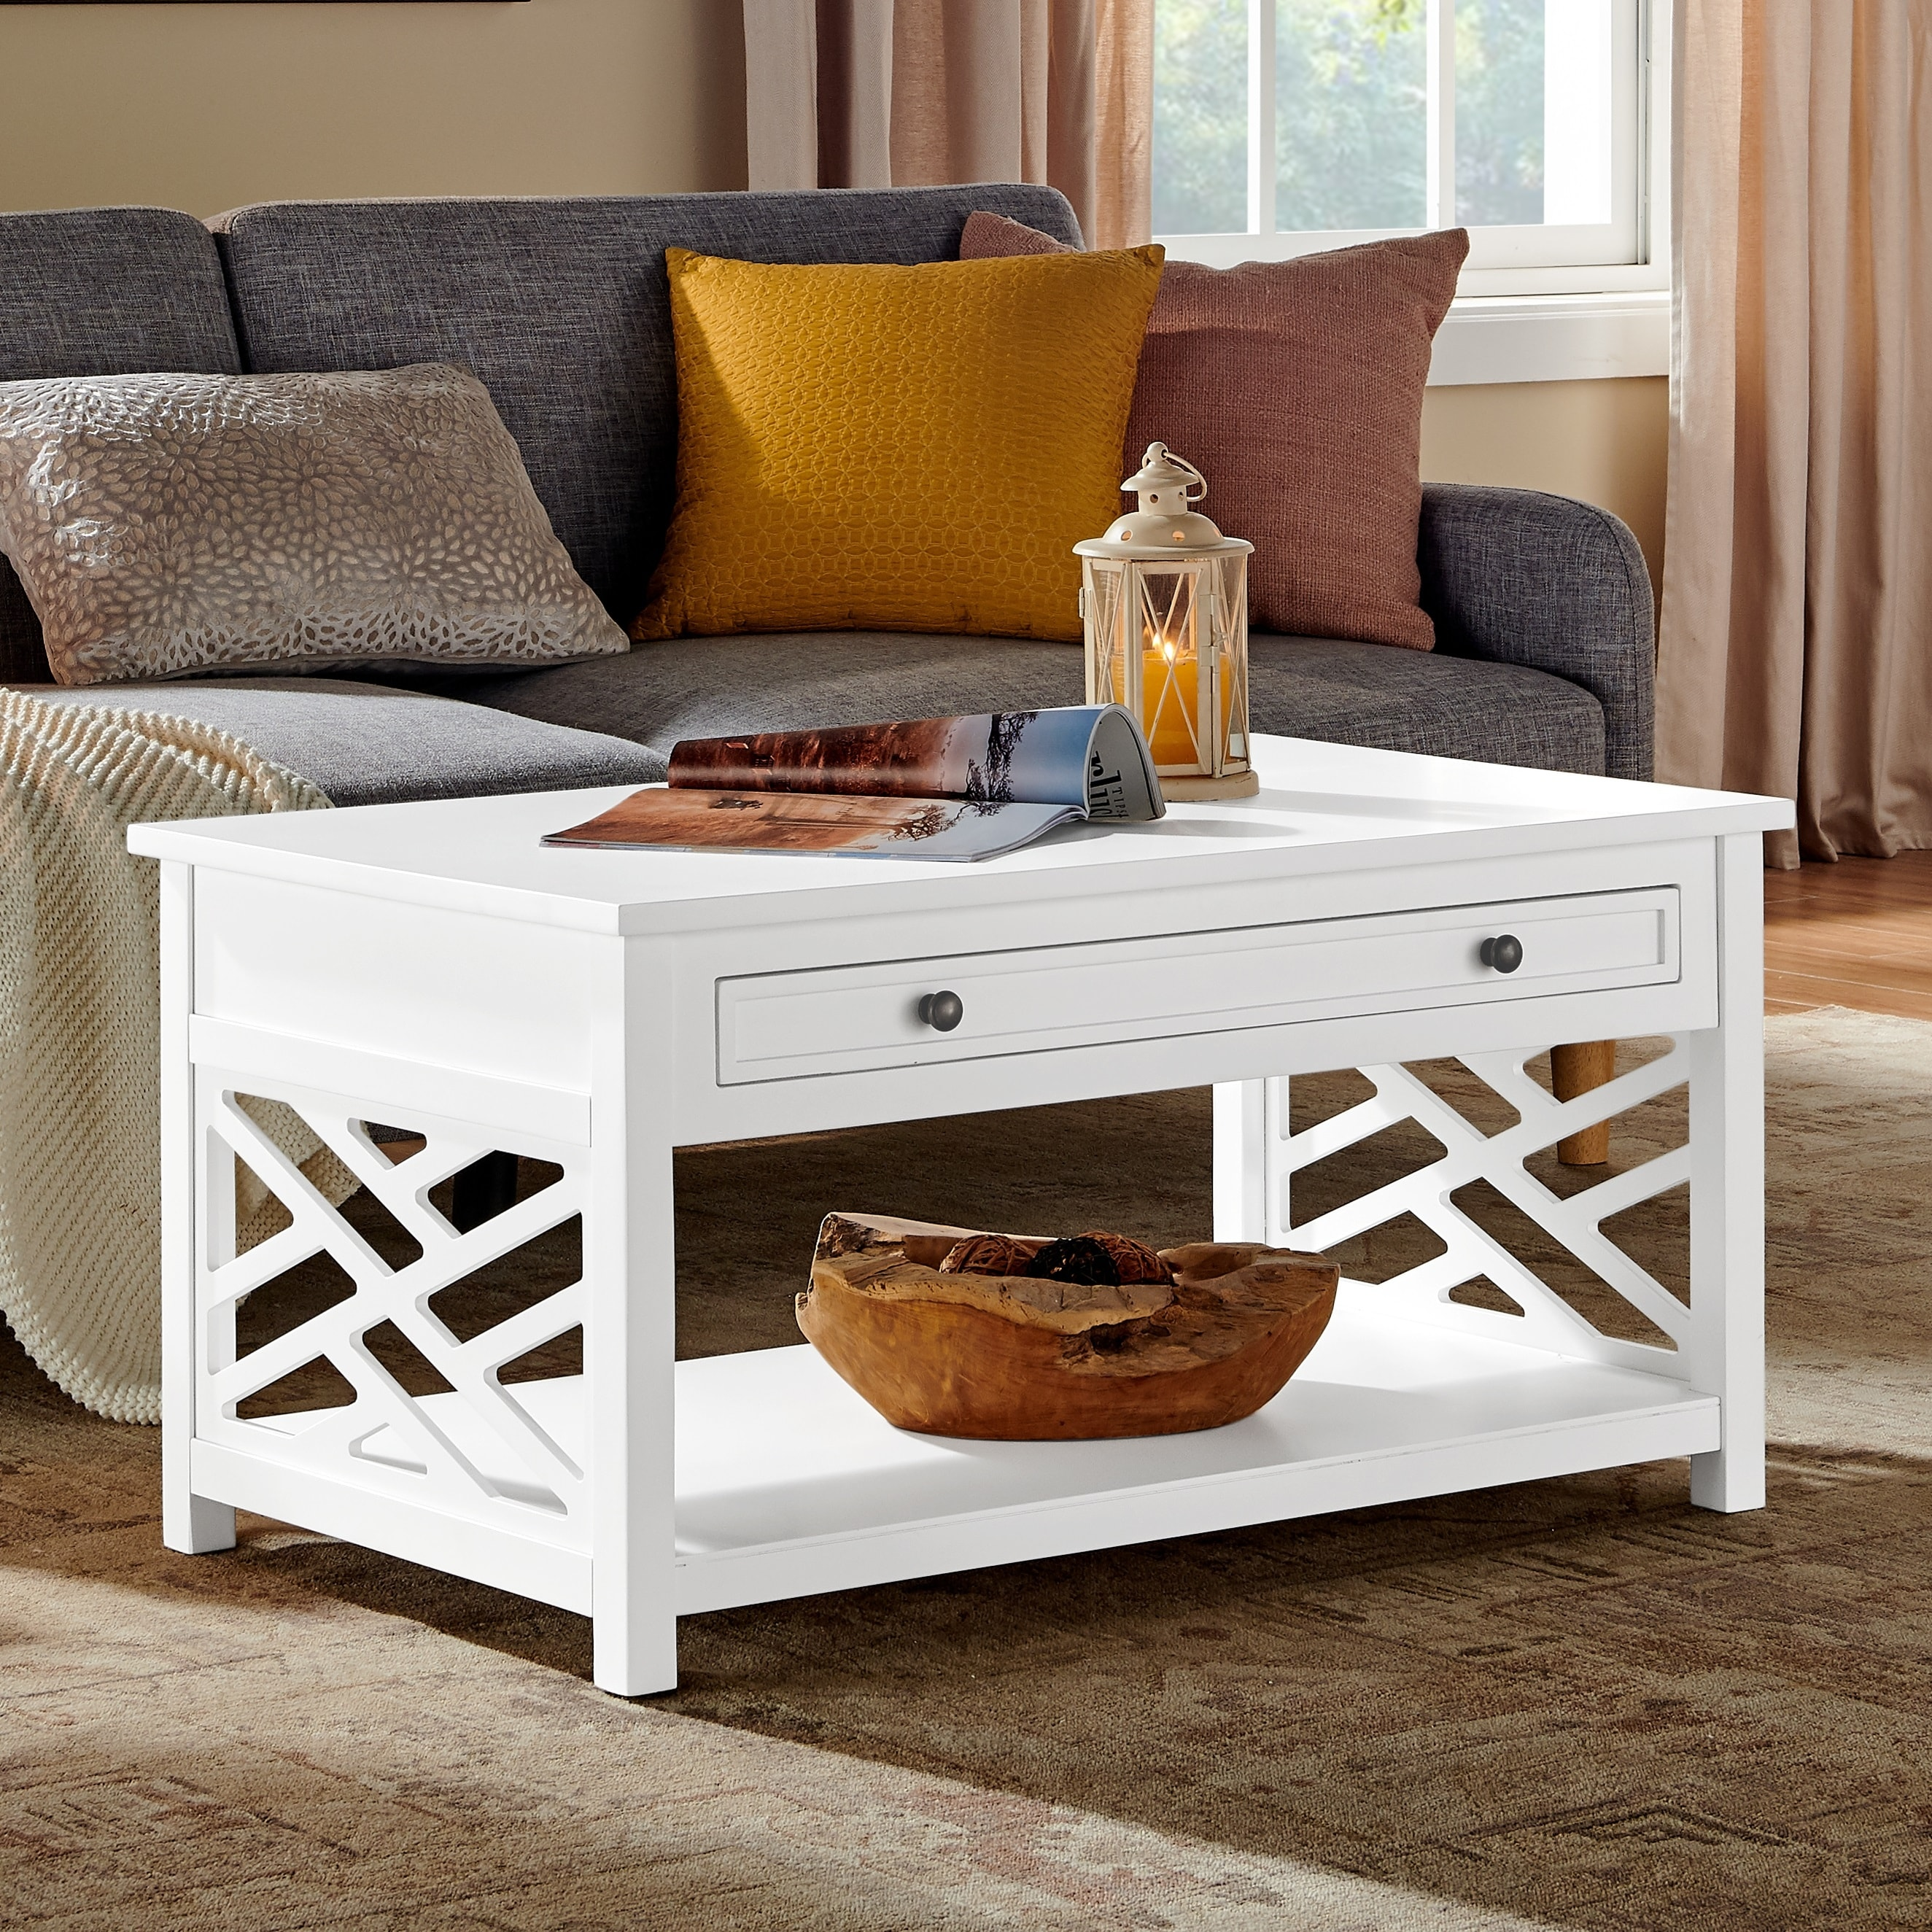 porch den altadena 36 inch wide wood coffee table with 1 drawer